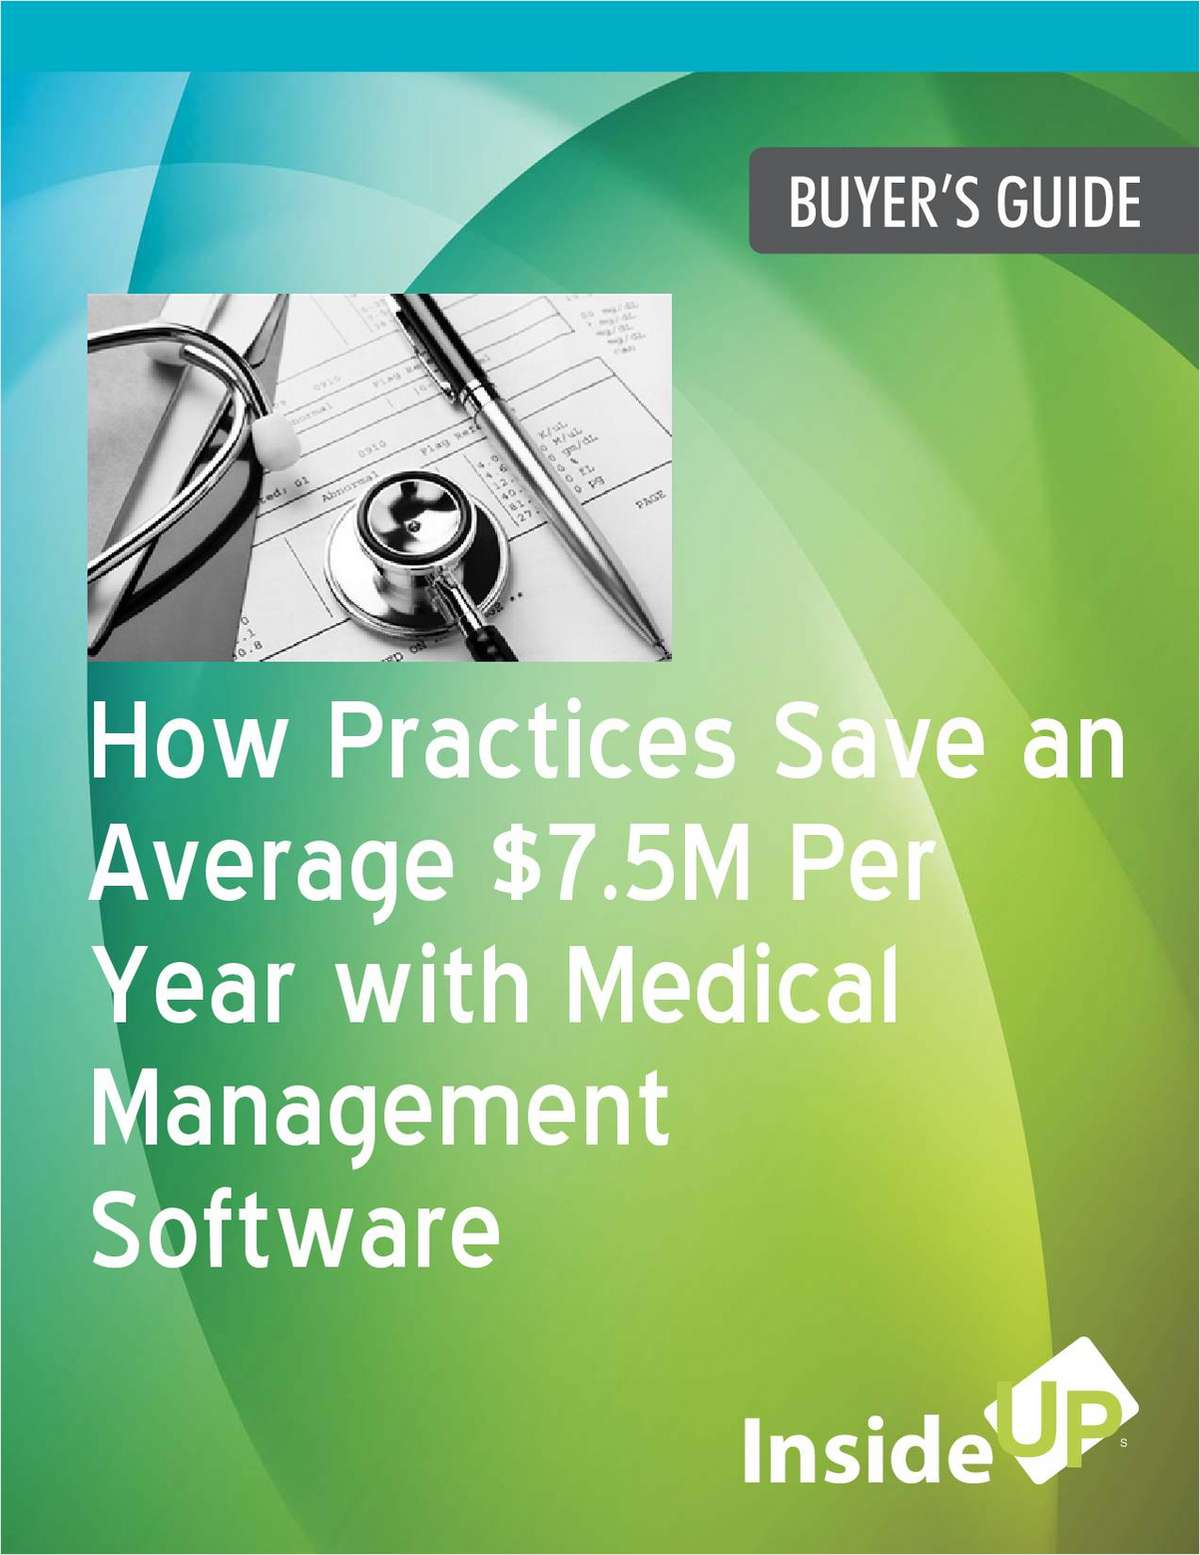 How Practices Save an Average $7.5M Per Year with Medical Management Software